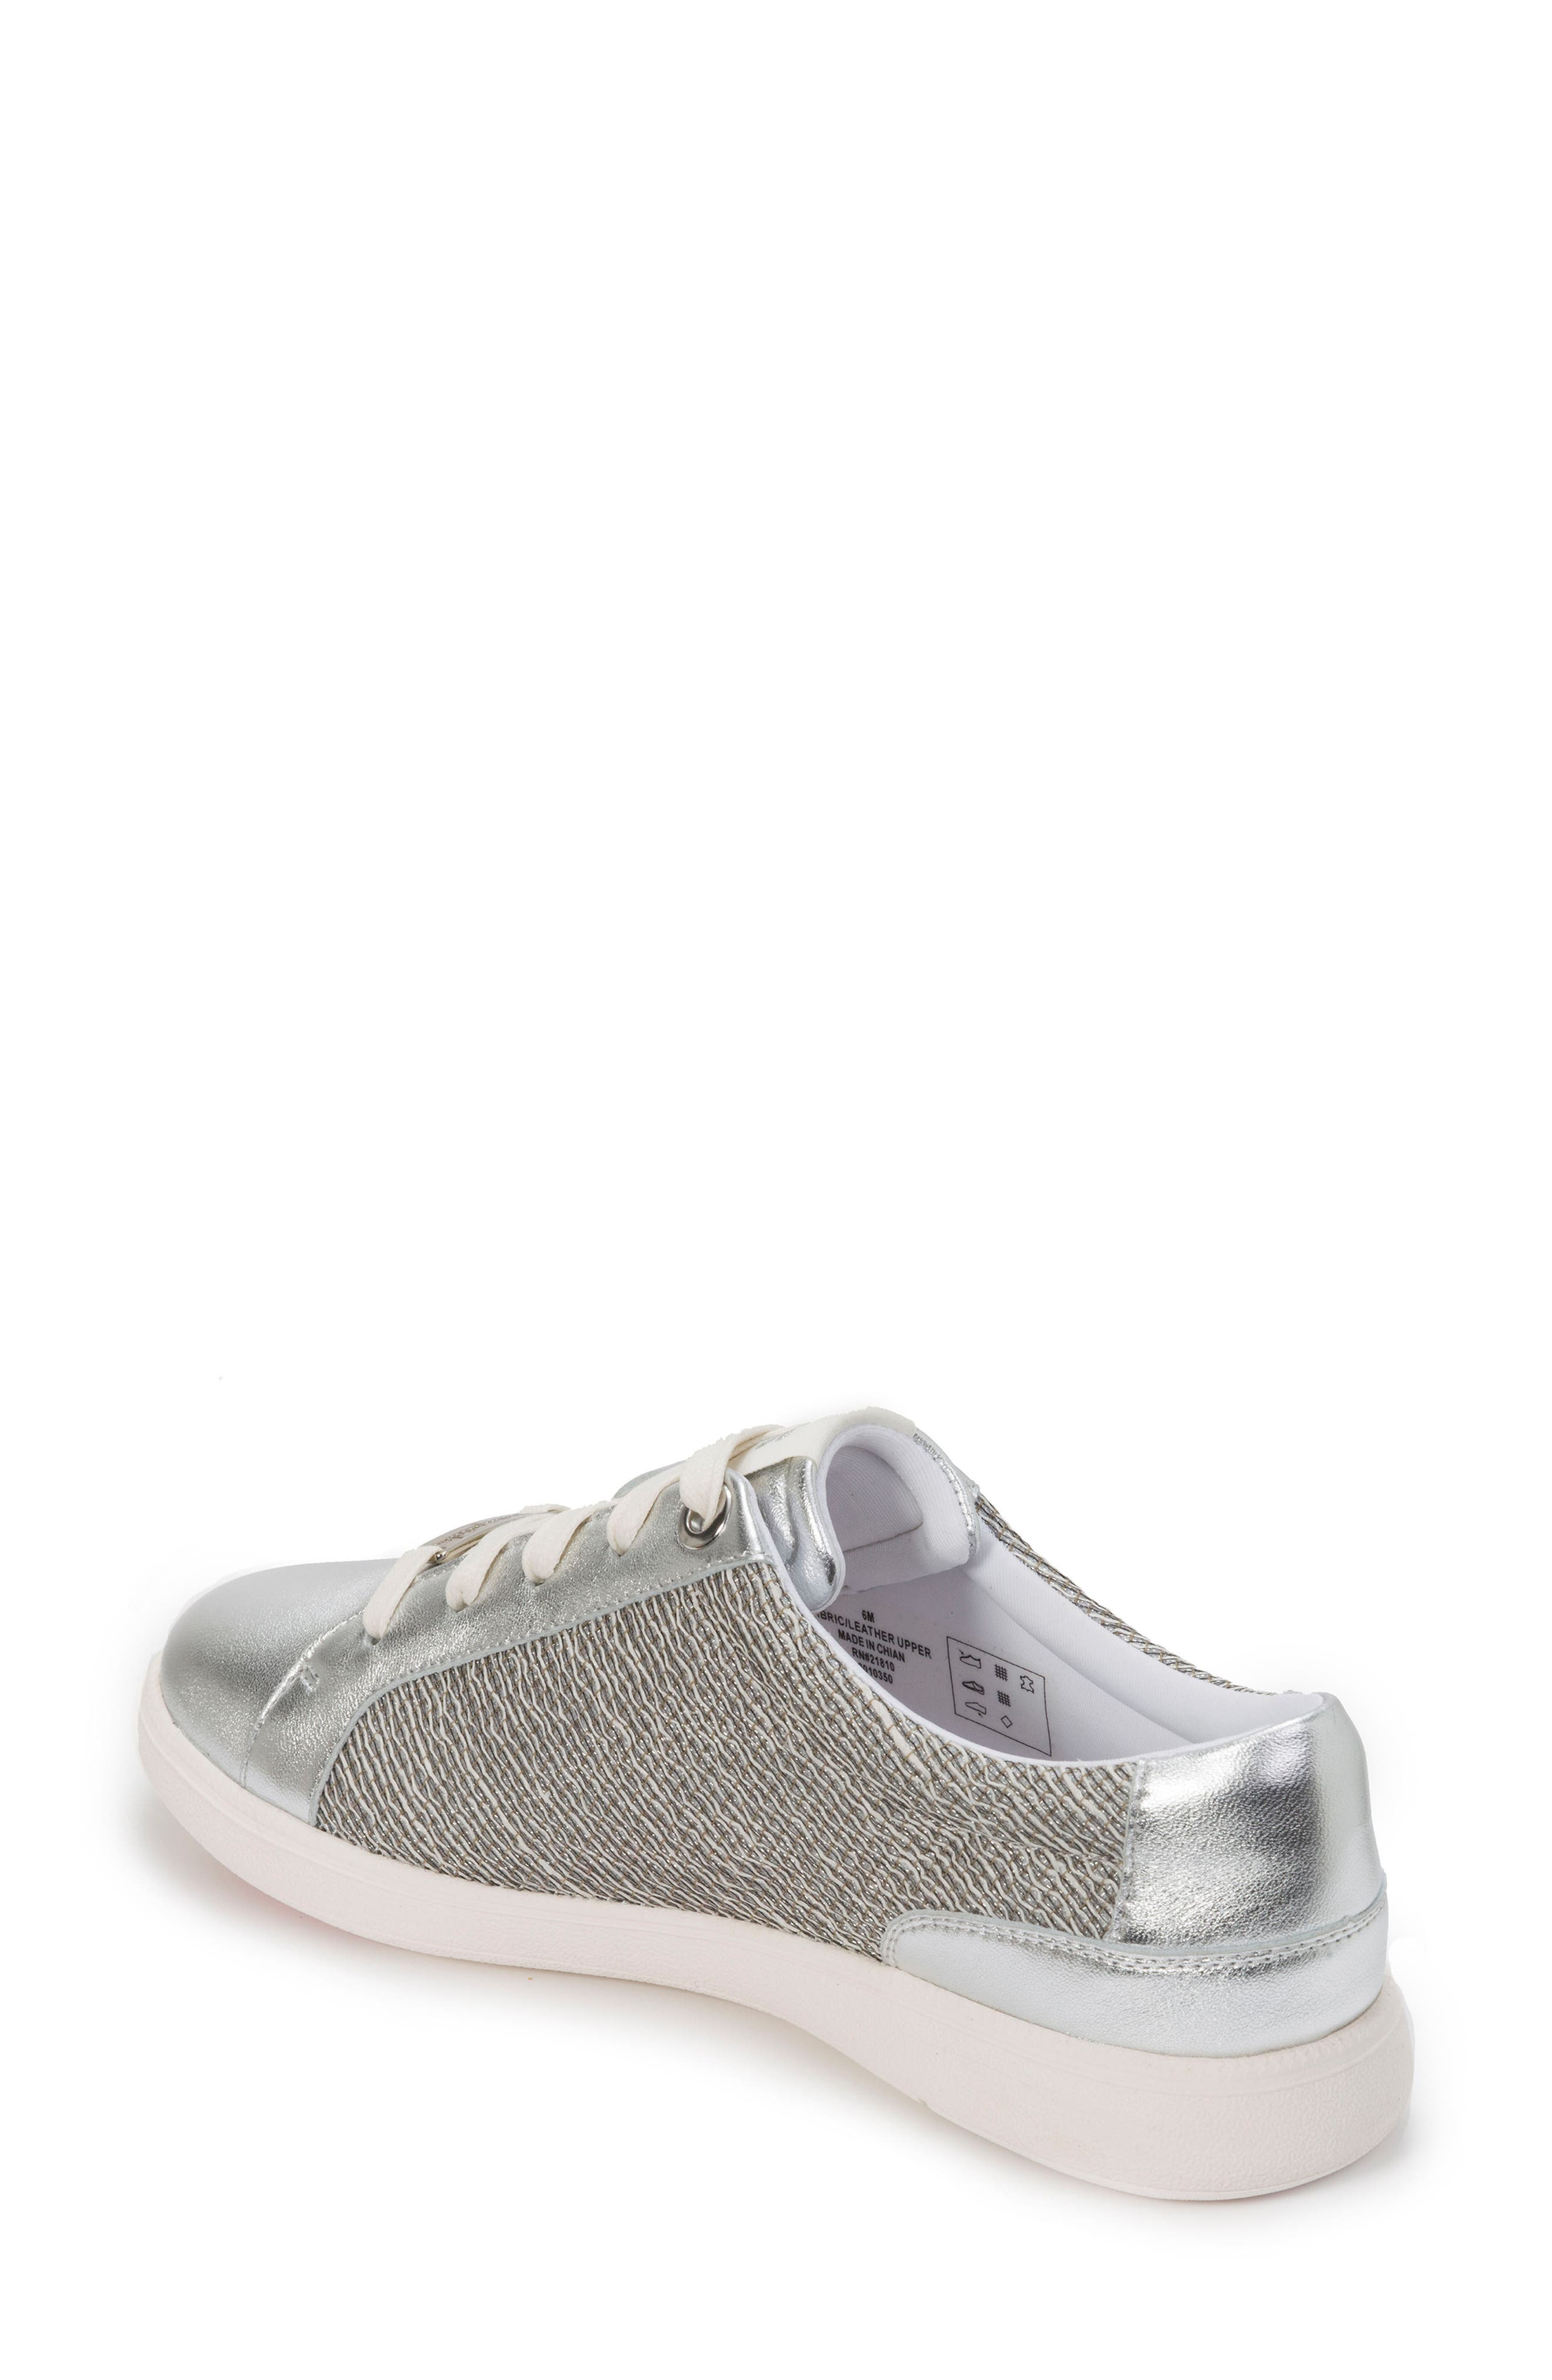 Andi Sneaker,                             Alternate thumbnail 2, color,                             Silver Leather